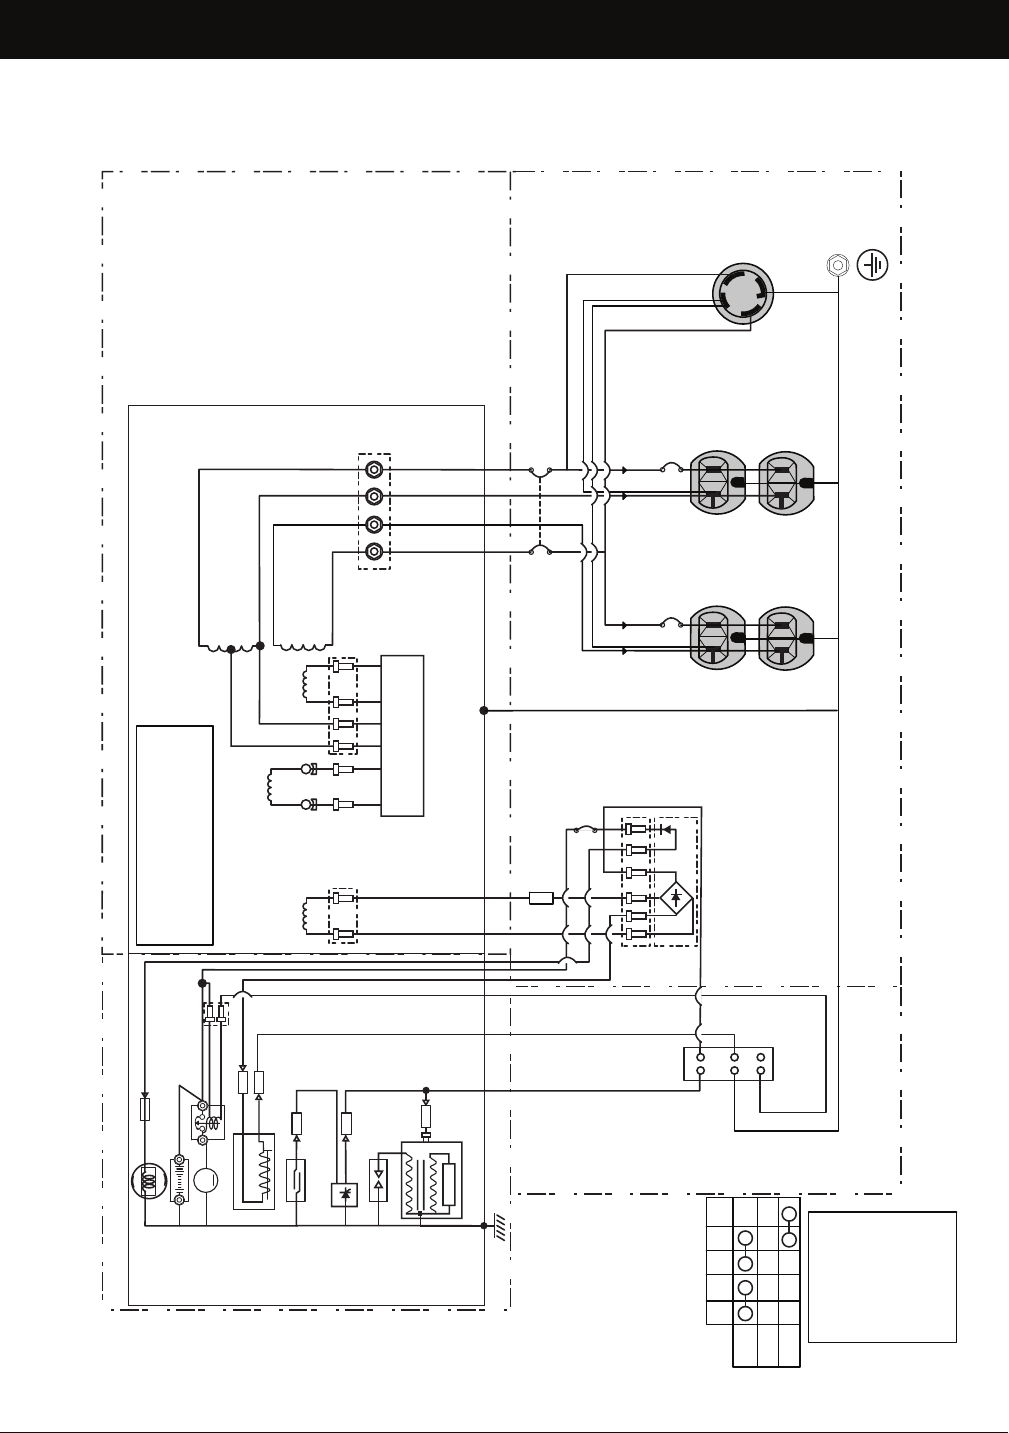 diagram motor control wiring diagram discover your wiring honeywell generator wiring diagram